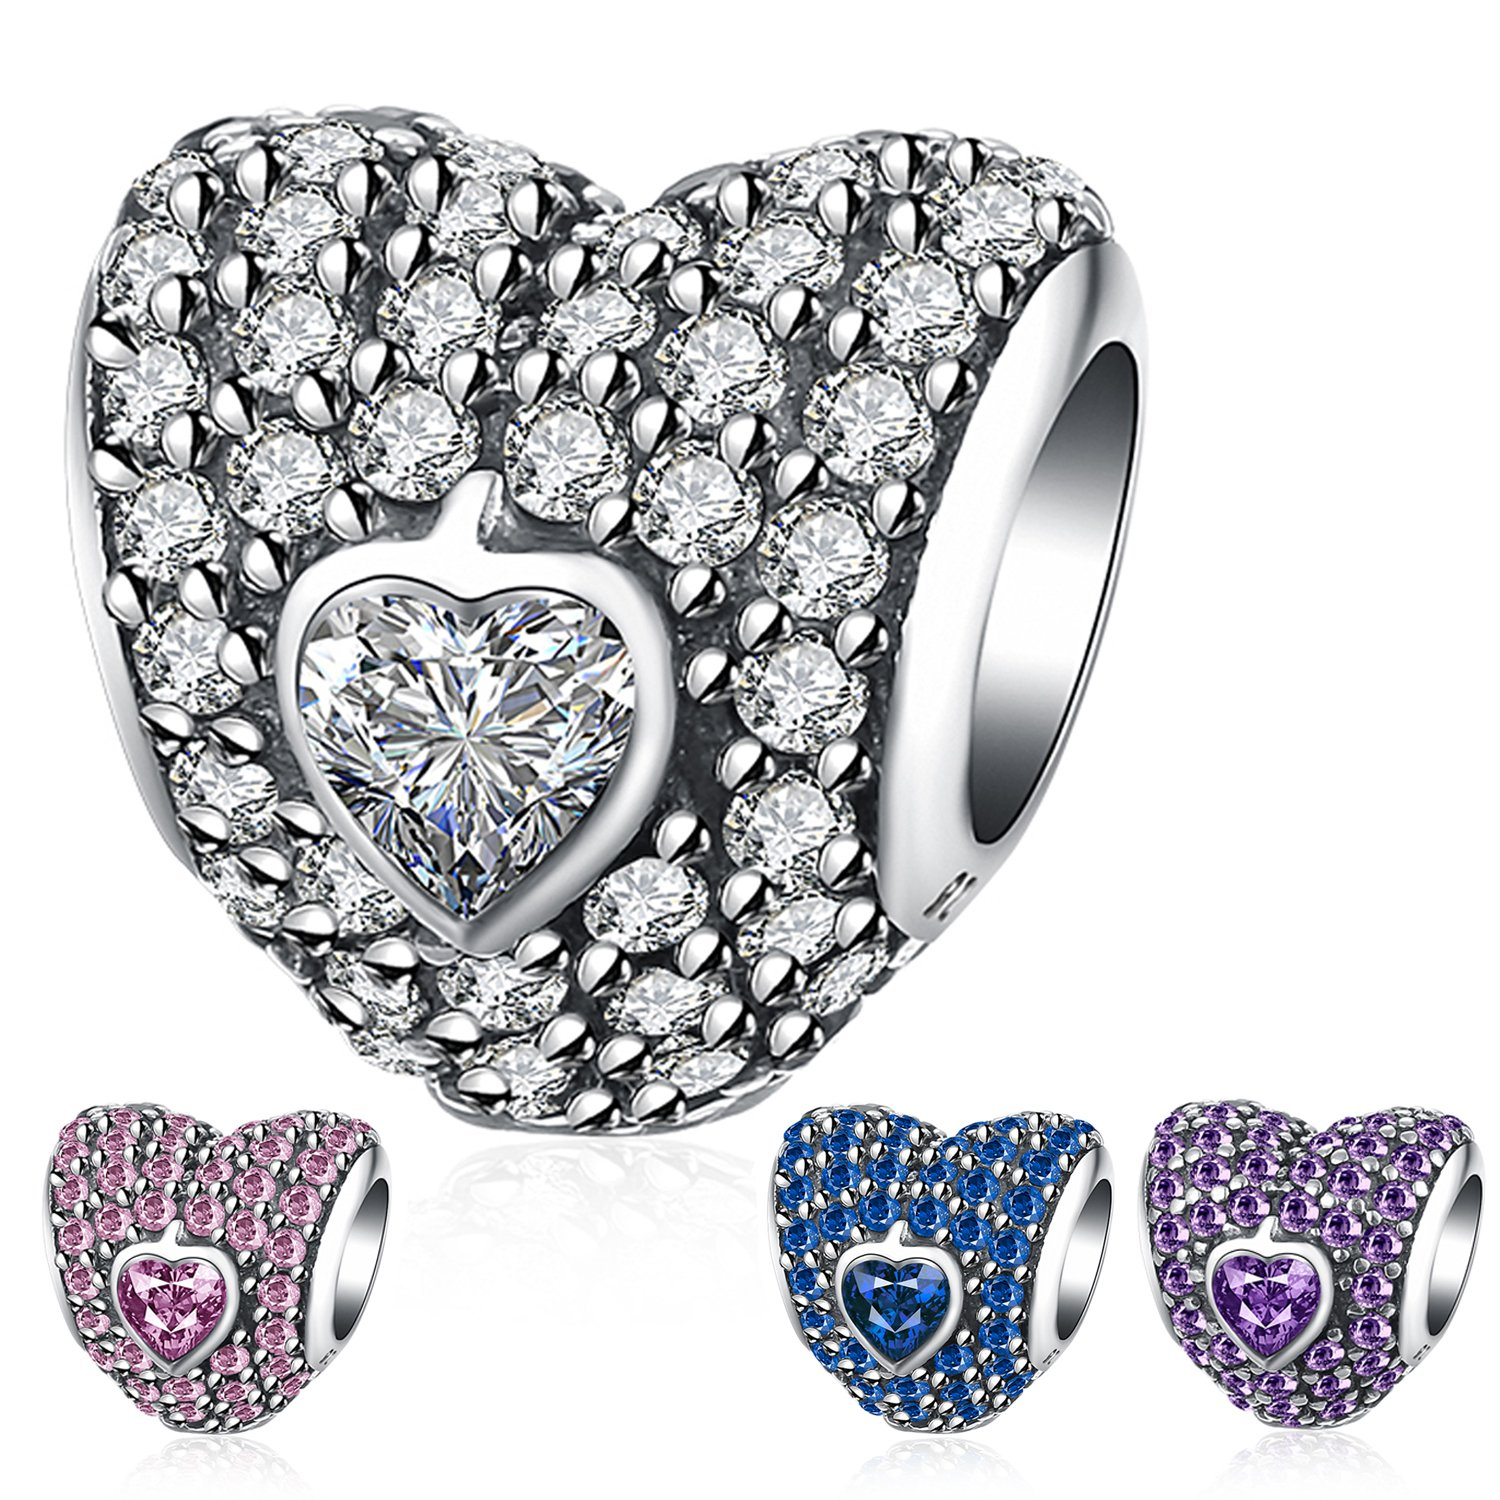 Ronglai Jewelry Sterling Silver Love Heart Bead Charm Pink Crystal Birthstone CZ Charms fit Snake Chain Bracelet 4 Styles (White birthstones charm)